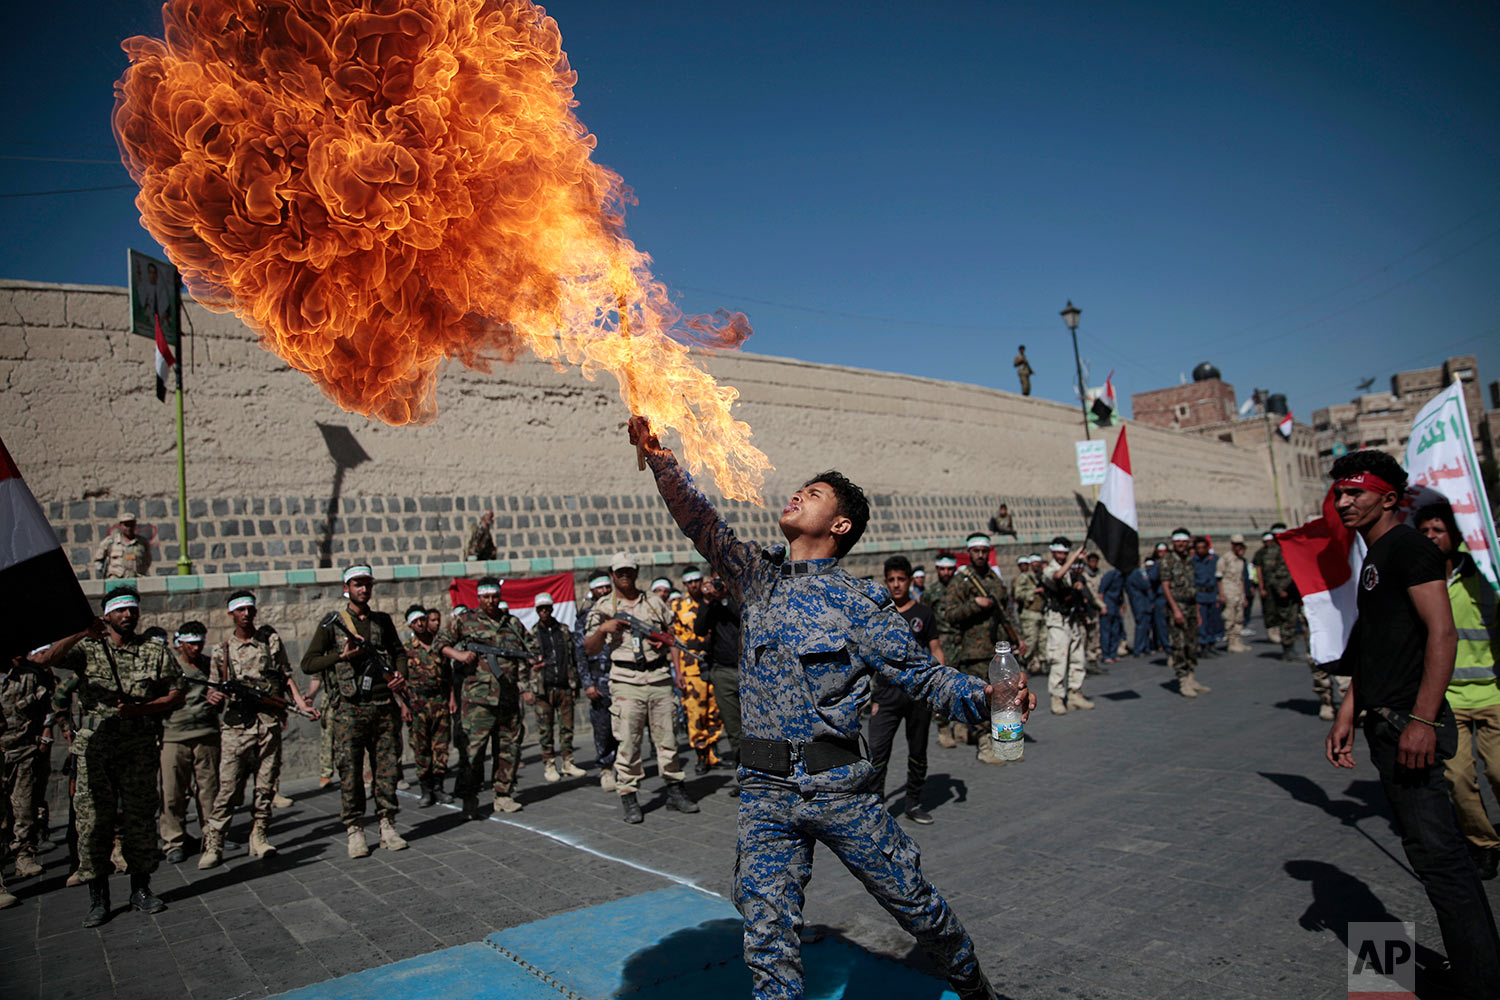 A newly recruited Shiite fighter, known as Houthi, displays his skills during a parade aimed at mobilizing more fighters into battlefronts to fight pro-government forces in several Yemeni cities, in Sanaa, Yemen, Thursday, Jan. 5, 2017. (AP Photo/Hani Mohammed)